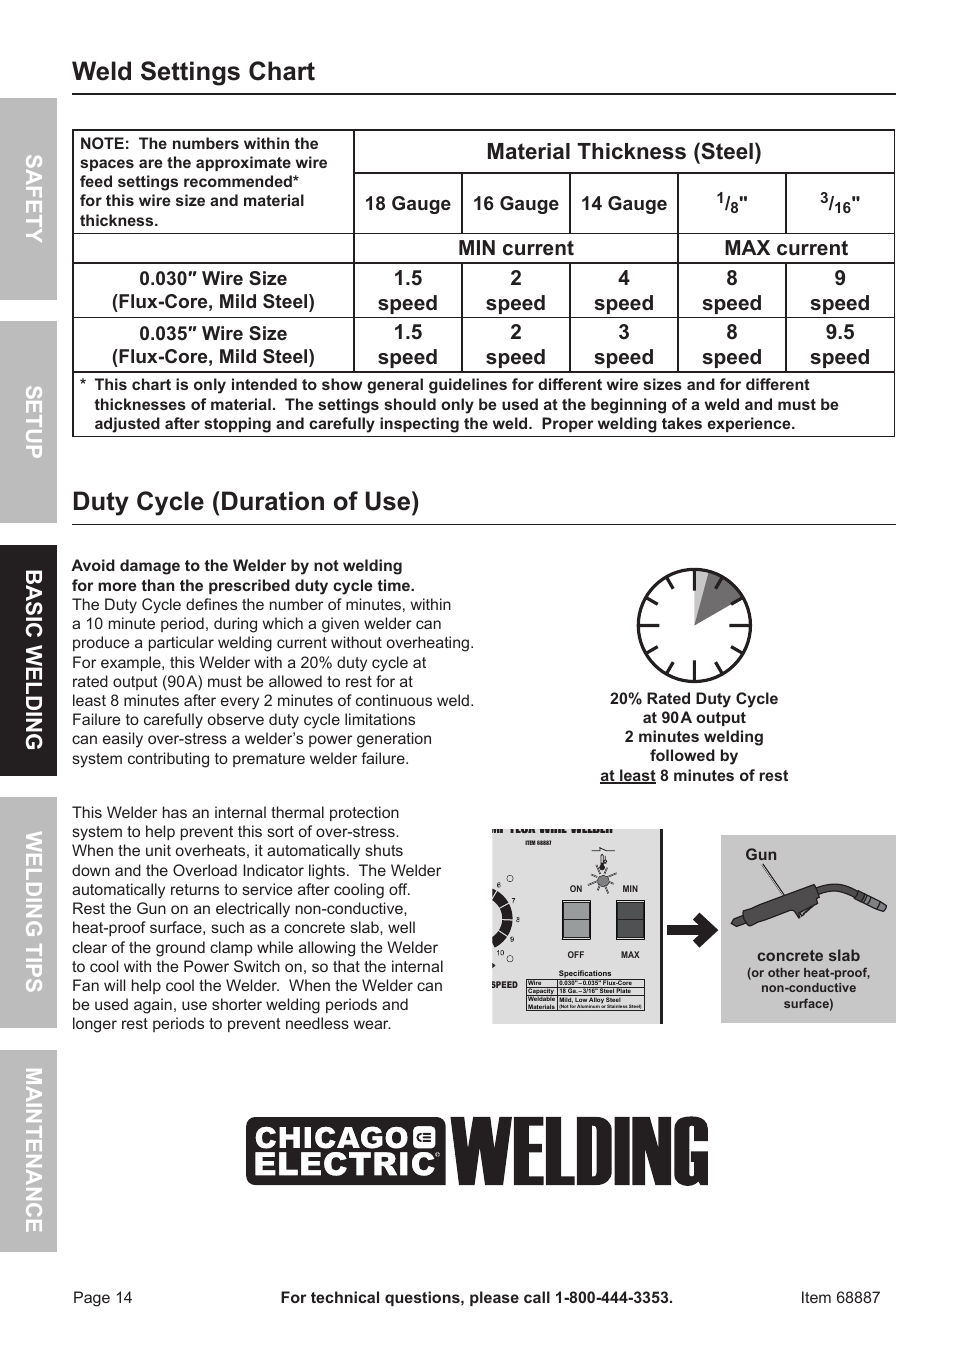 Weld settings chart, Duty cycle (duration of use), Material ...